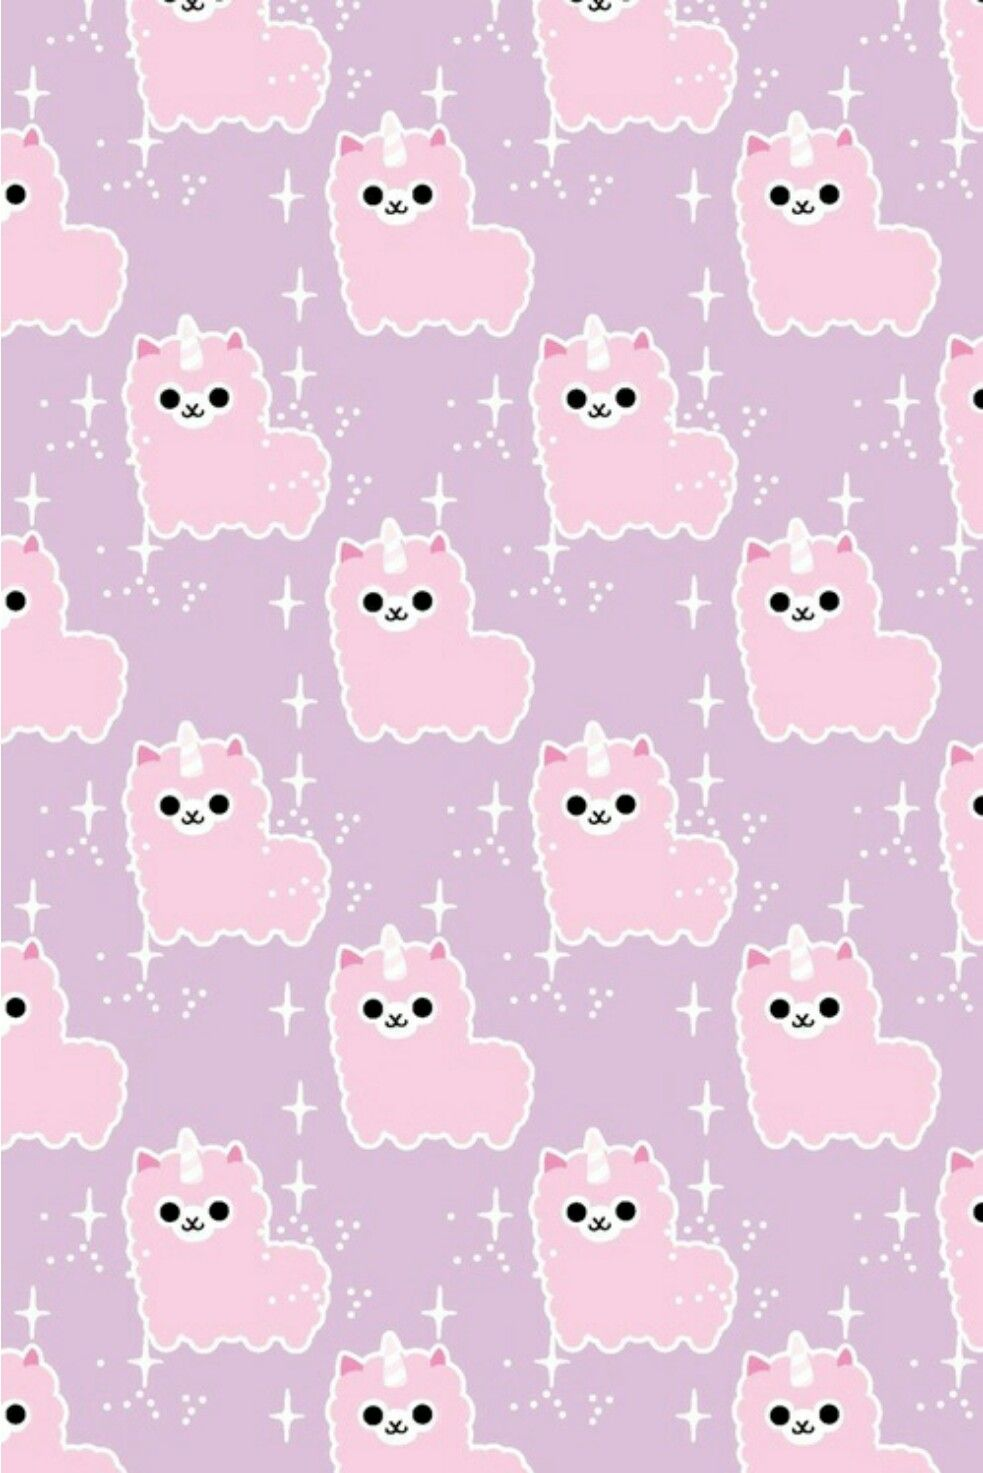 Wallpaper Kawaii Lama Wallpaper Kawaii Nel 2019 Schema Di Sfondo